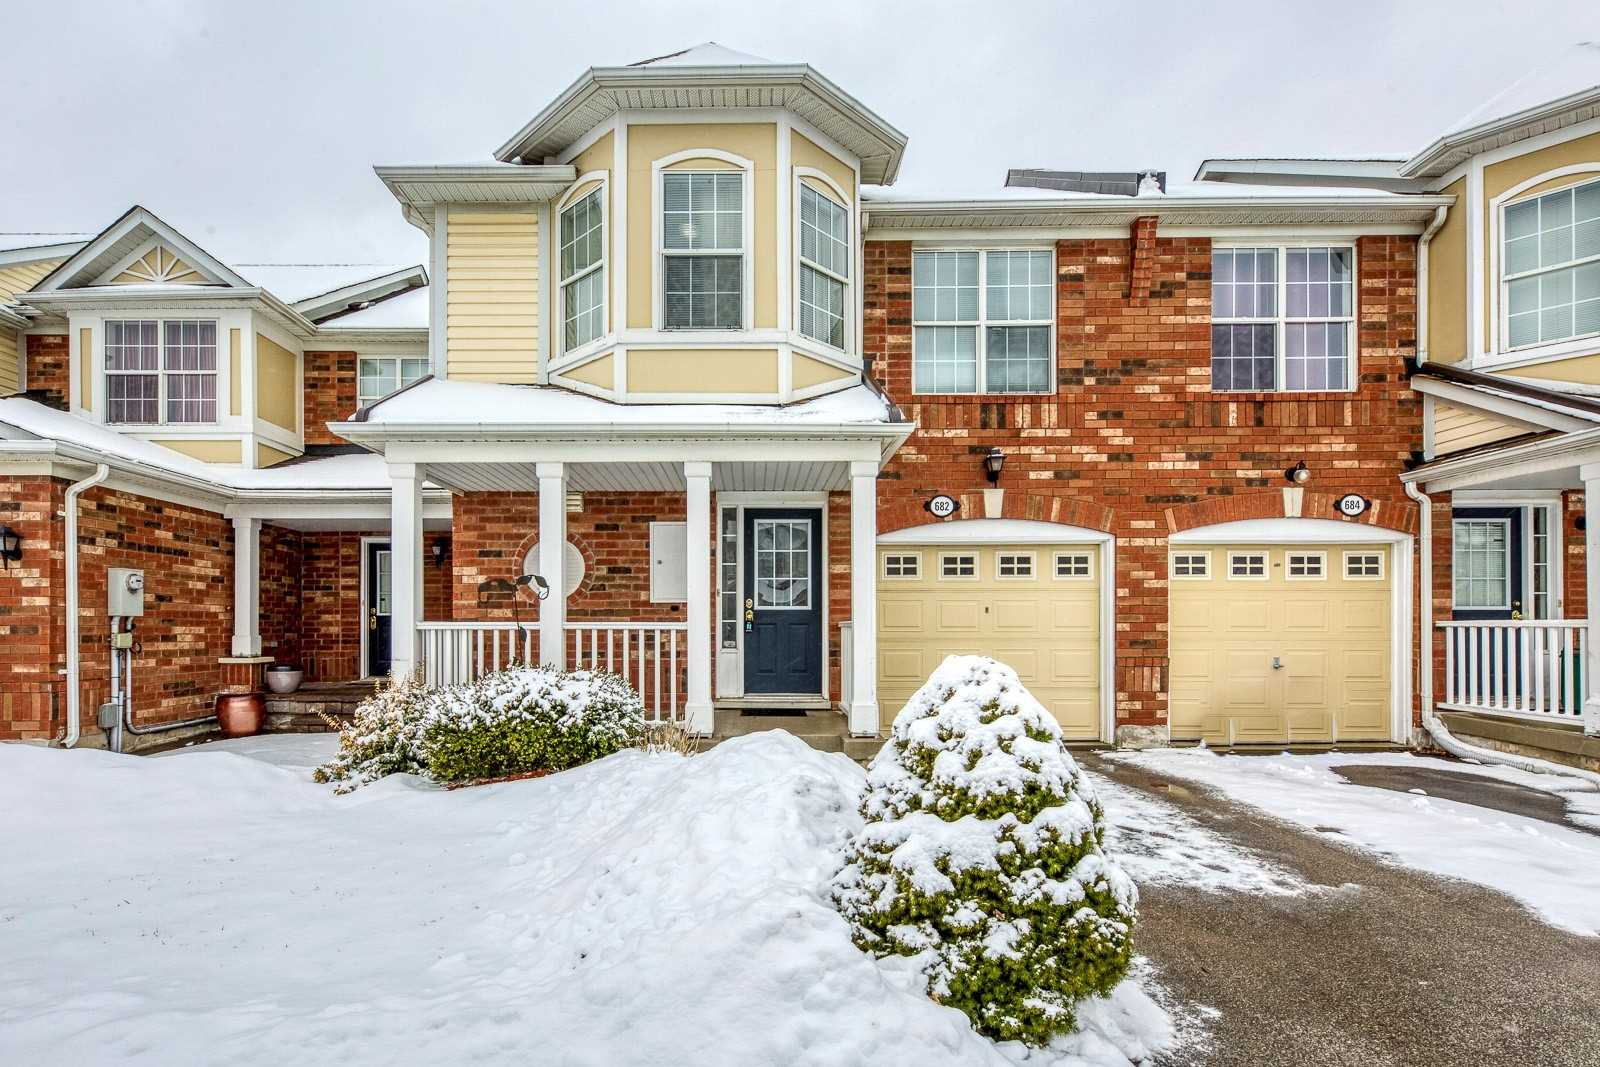 Image 1 of 20 showing inside of 3 Bedroom Att/Row/Twnhouse 2-Storey house for sale at 682 Edwards Ave, Milton L9T6B3